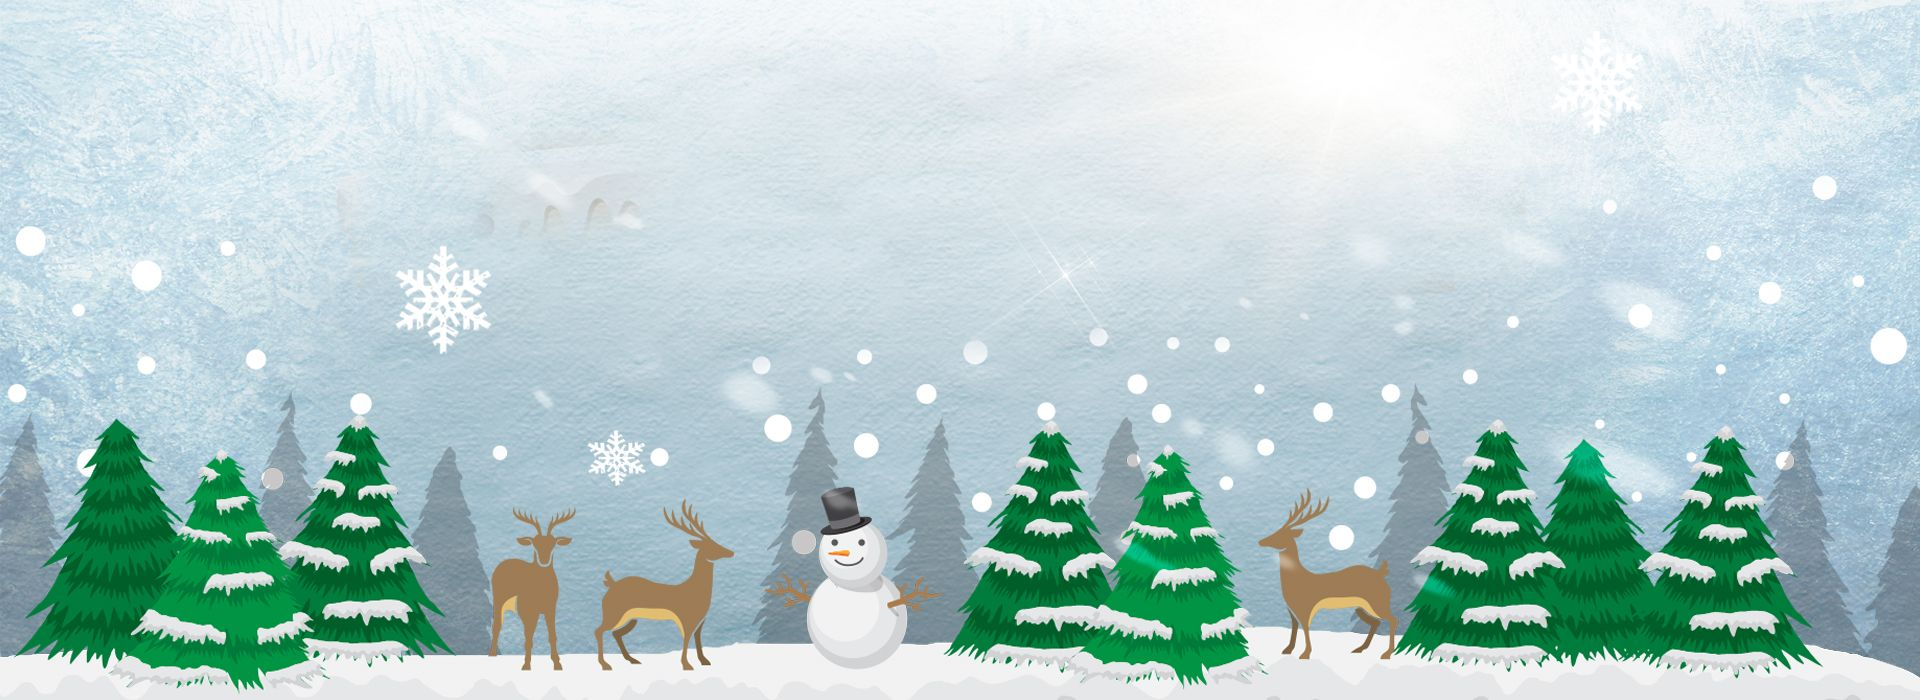 christmas snow winter cartoon background snowman christmas tree winter cards christmas snow christmas snow winter cartoon